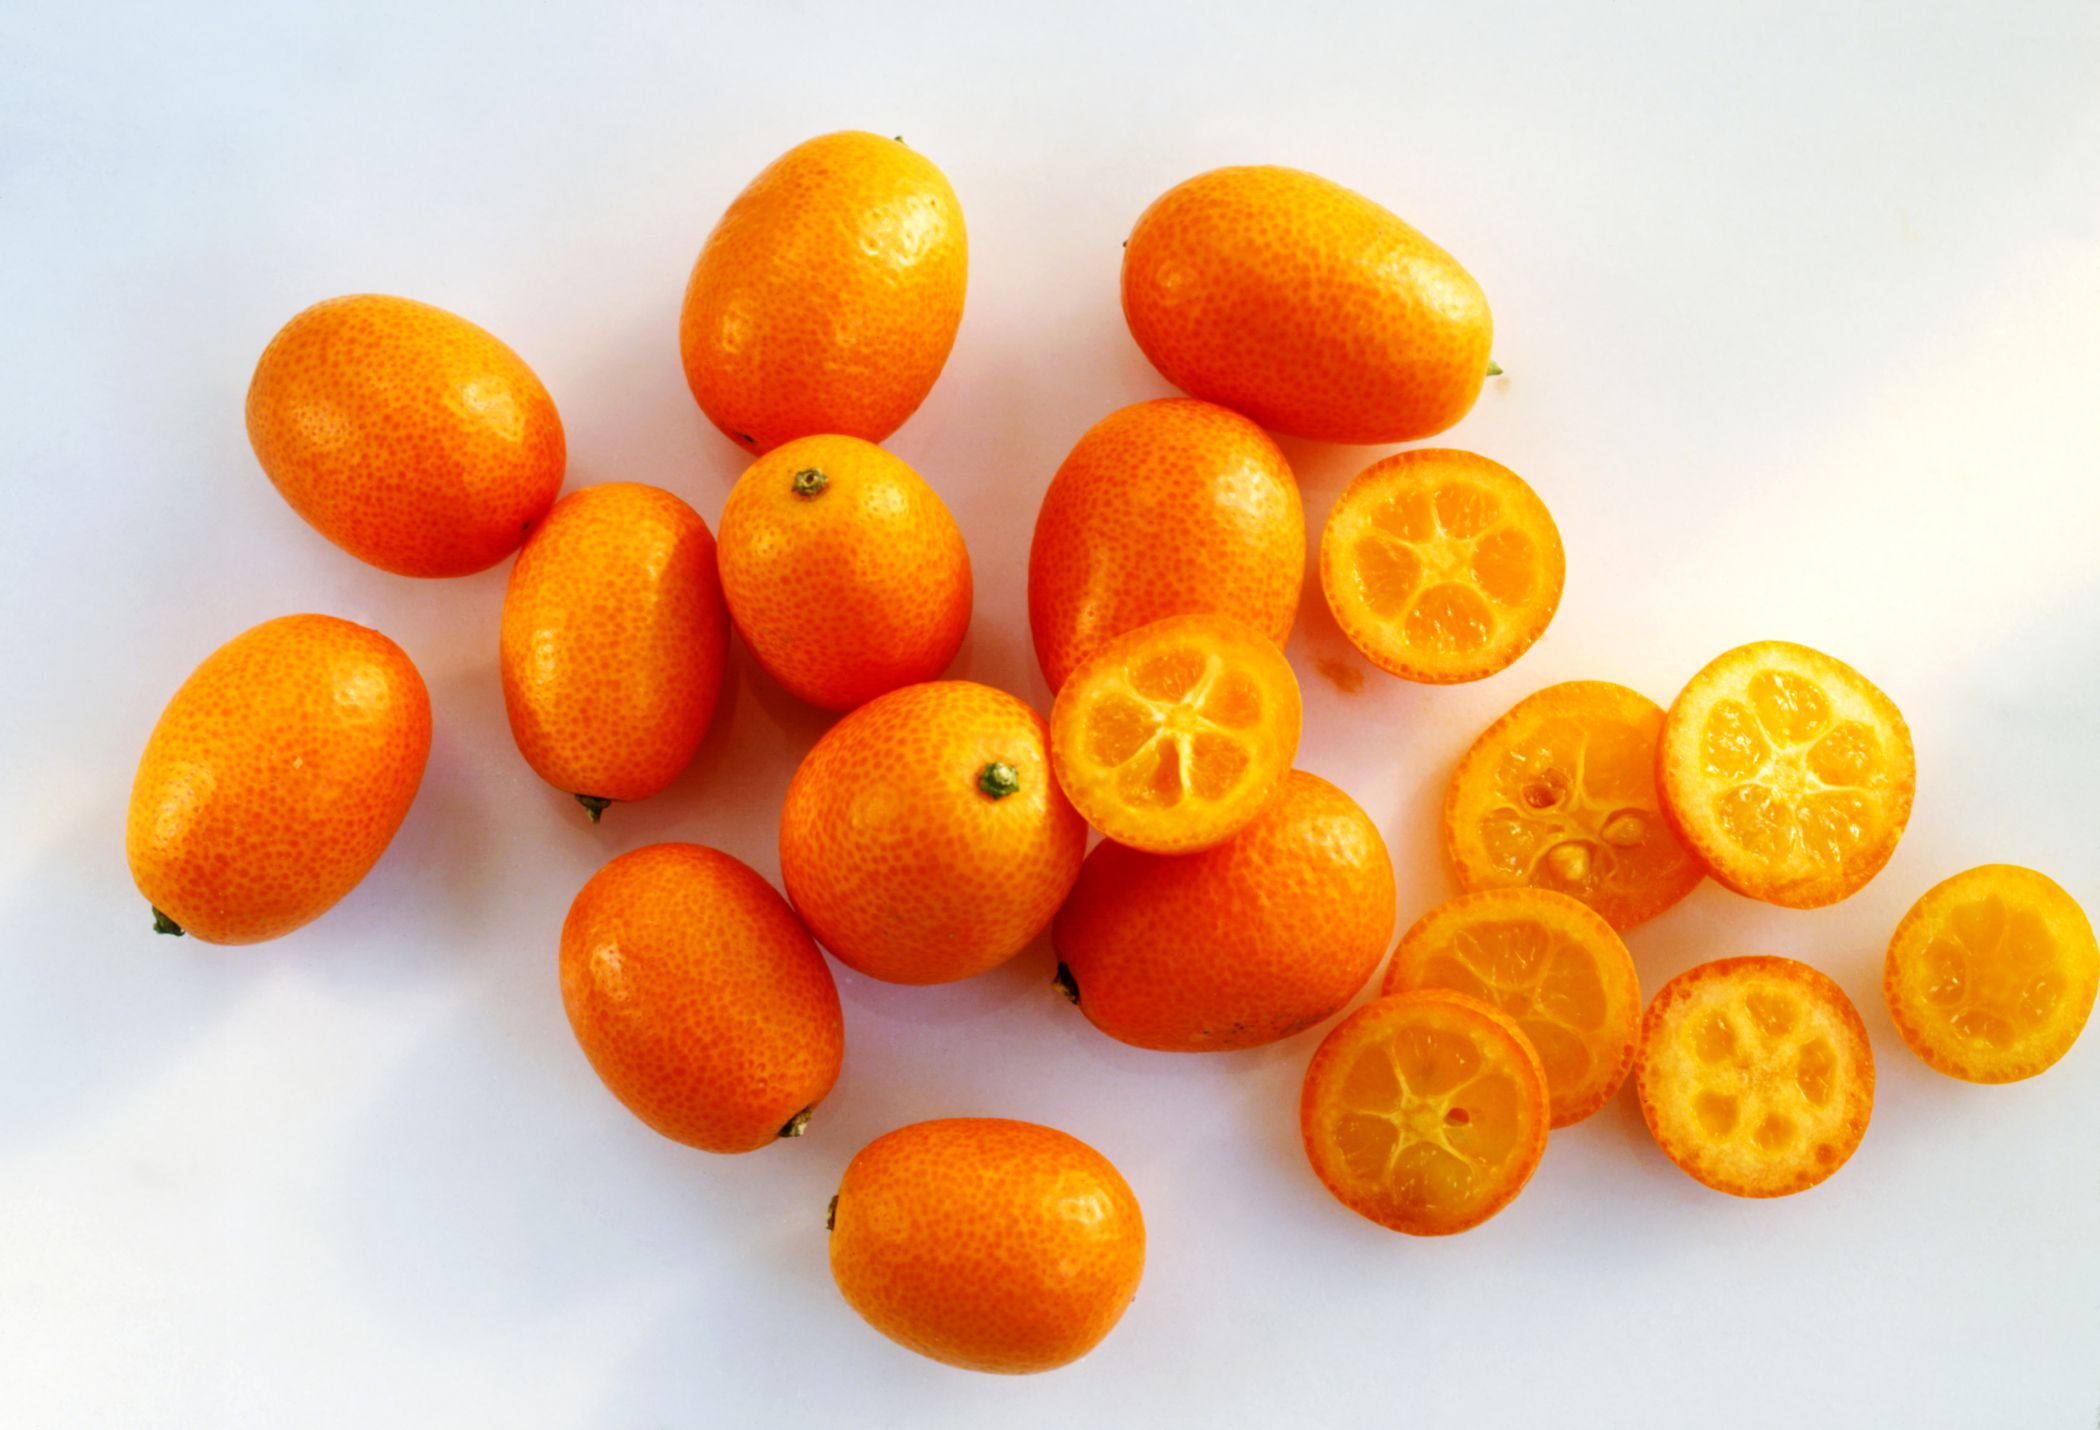 What Are Kumquats And How Do You Eat Them